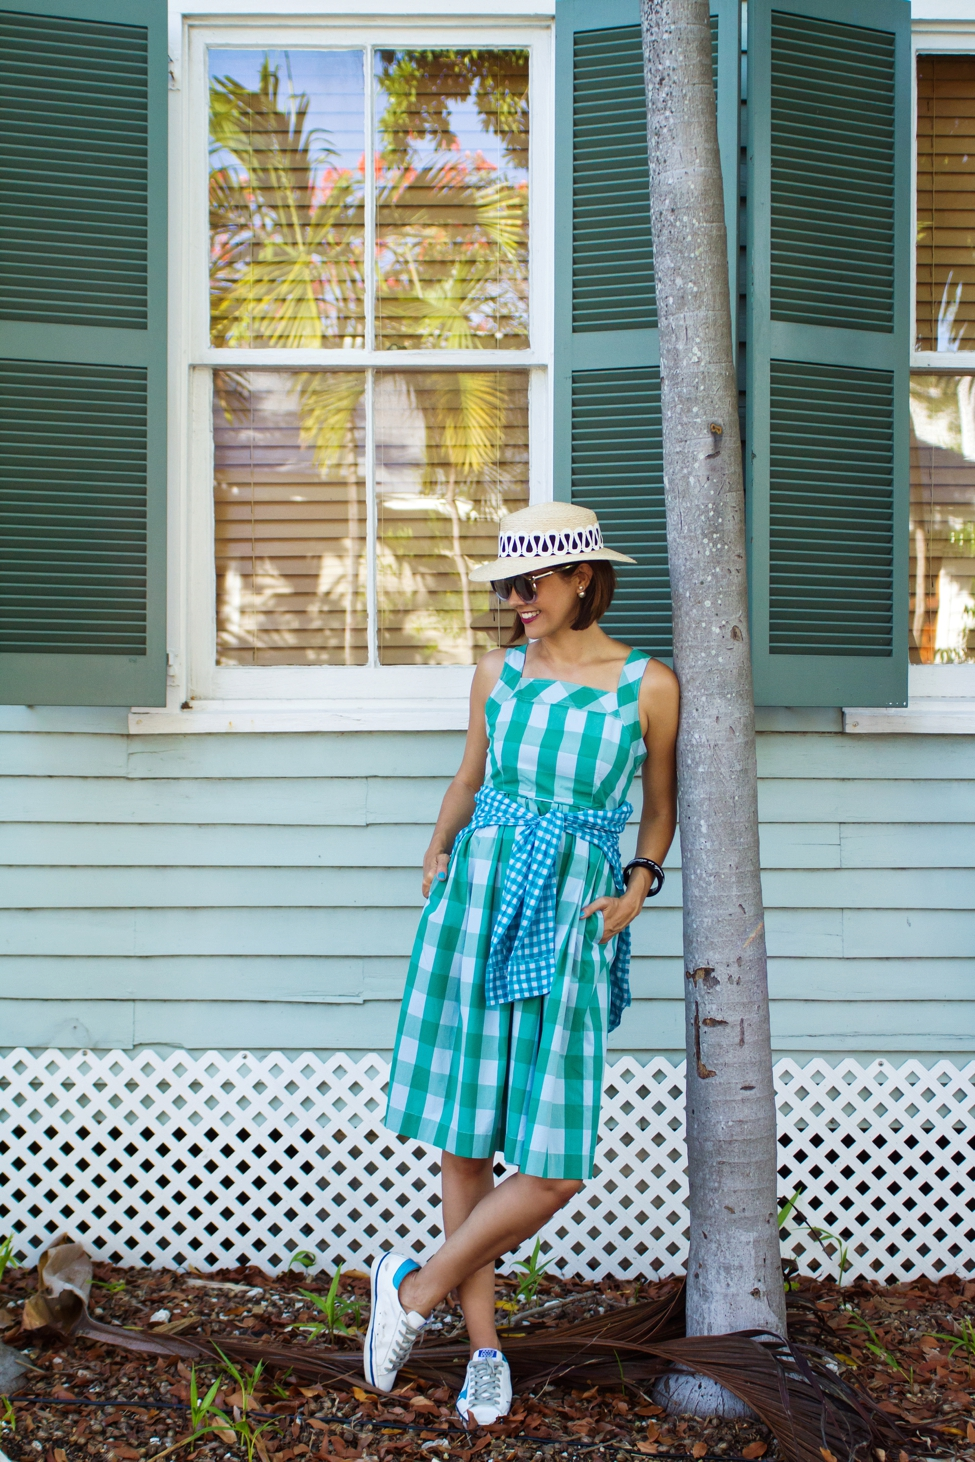 Wear Where Well Gingham on Gingham_0018